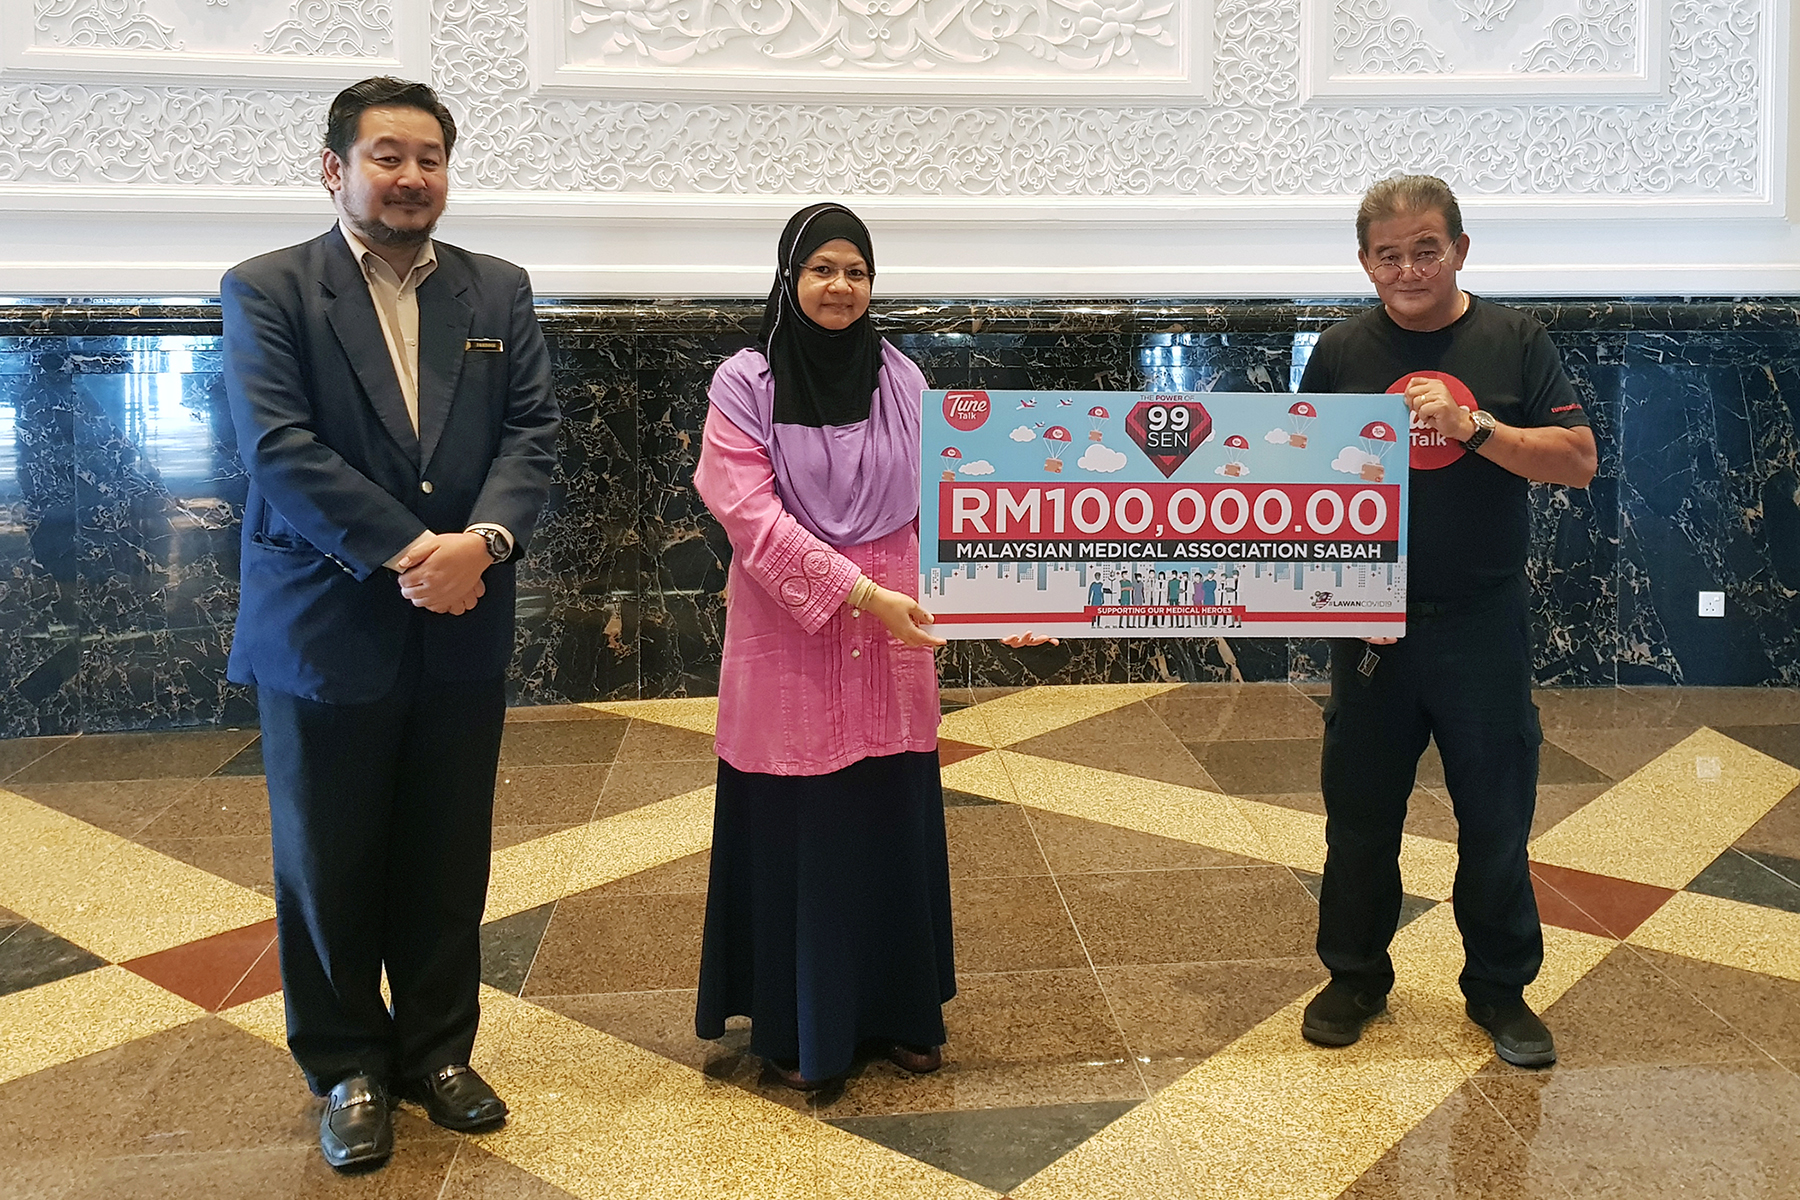 Malaysian Medical Assosiation Sabah : Dr Haslezah Binti Saelih Chairman, Malaysian Medical Association Sabah Dr Fredie Robinson Committee Member, Malaysian Medical Association Sabah Tune Talk representative : Mr John Chong Regional Sales Manager Sabah